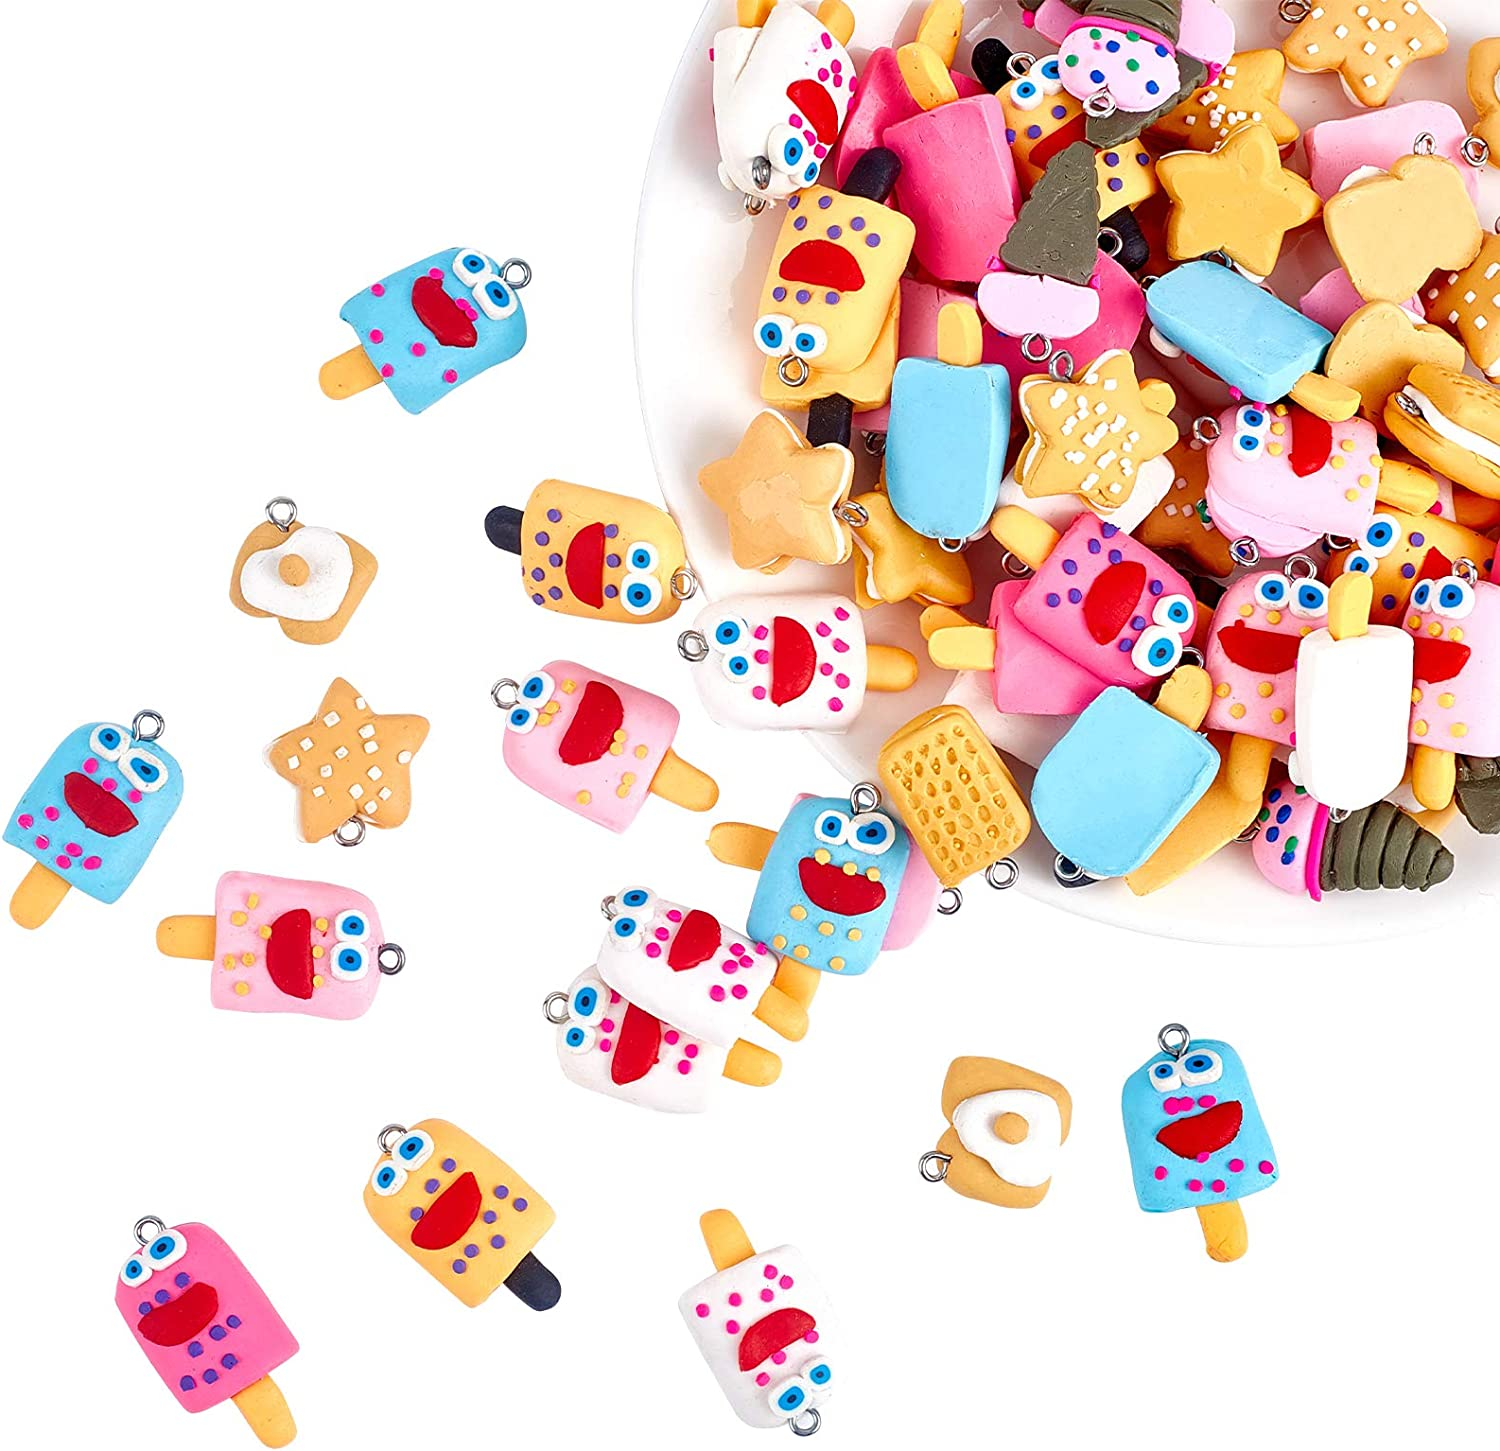 NBEADS 100 Pcs Food Theme Polymer Clay Charm Pendants, Random Mixed Handmade Polymer Clay Link Charms Food Cake Ice-Cream Dessert Slime Beads for Phone Straps Key Bag Decor DIY Jewelry Making